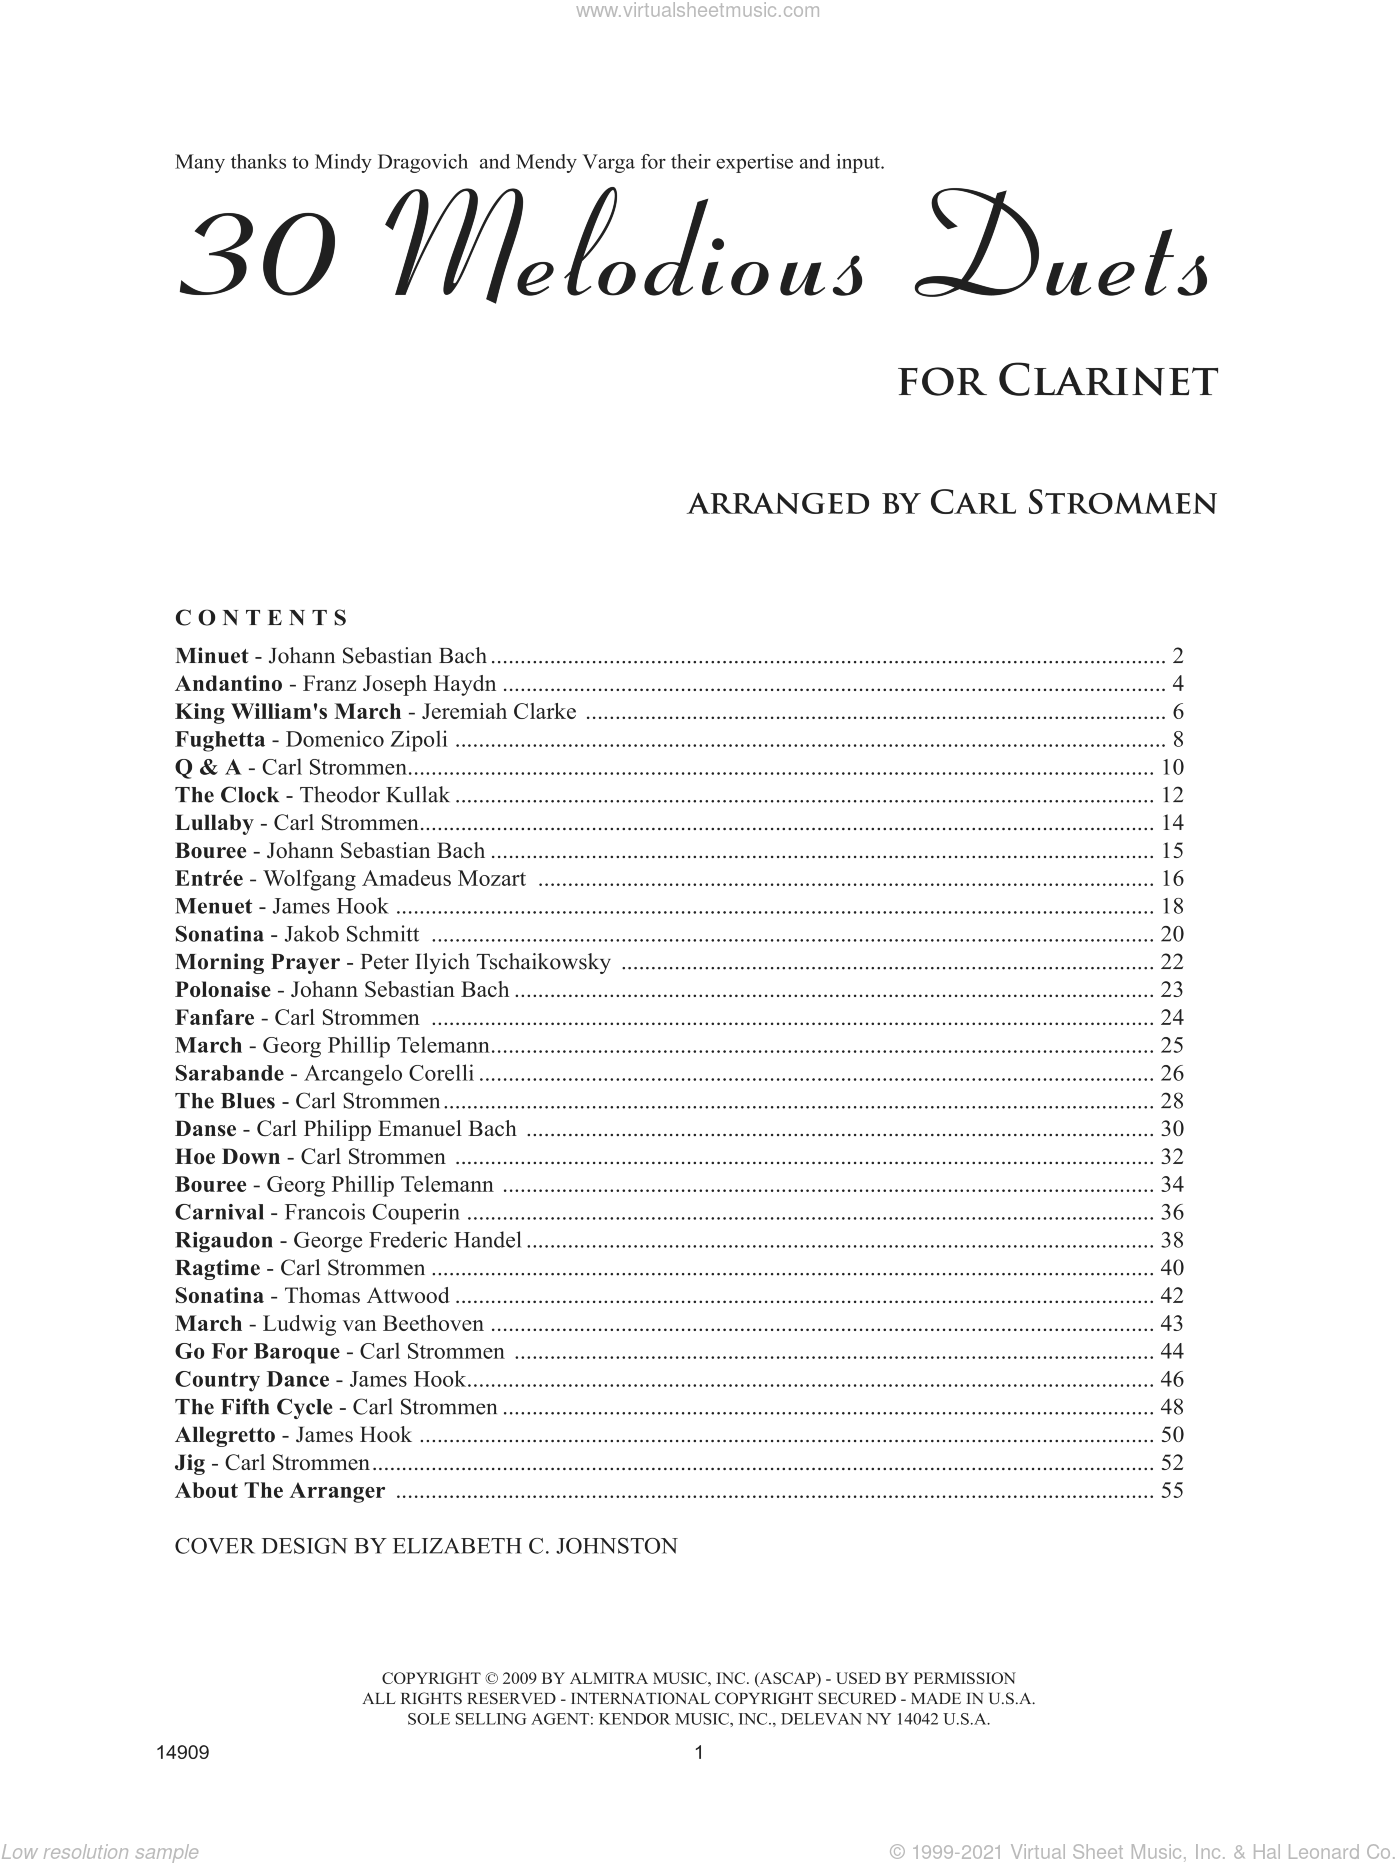 30 Melodious Duets sheet music for two clarinets by Carl Strommen